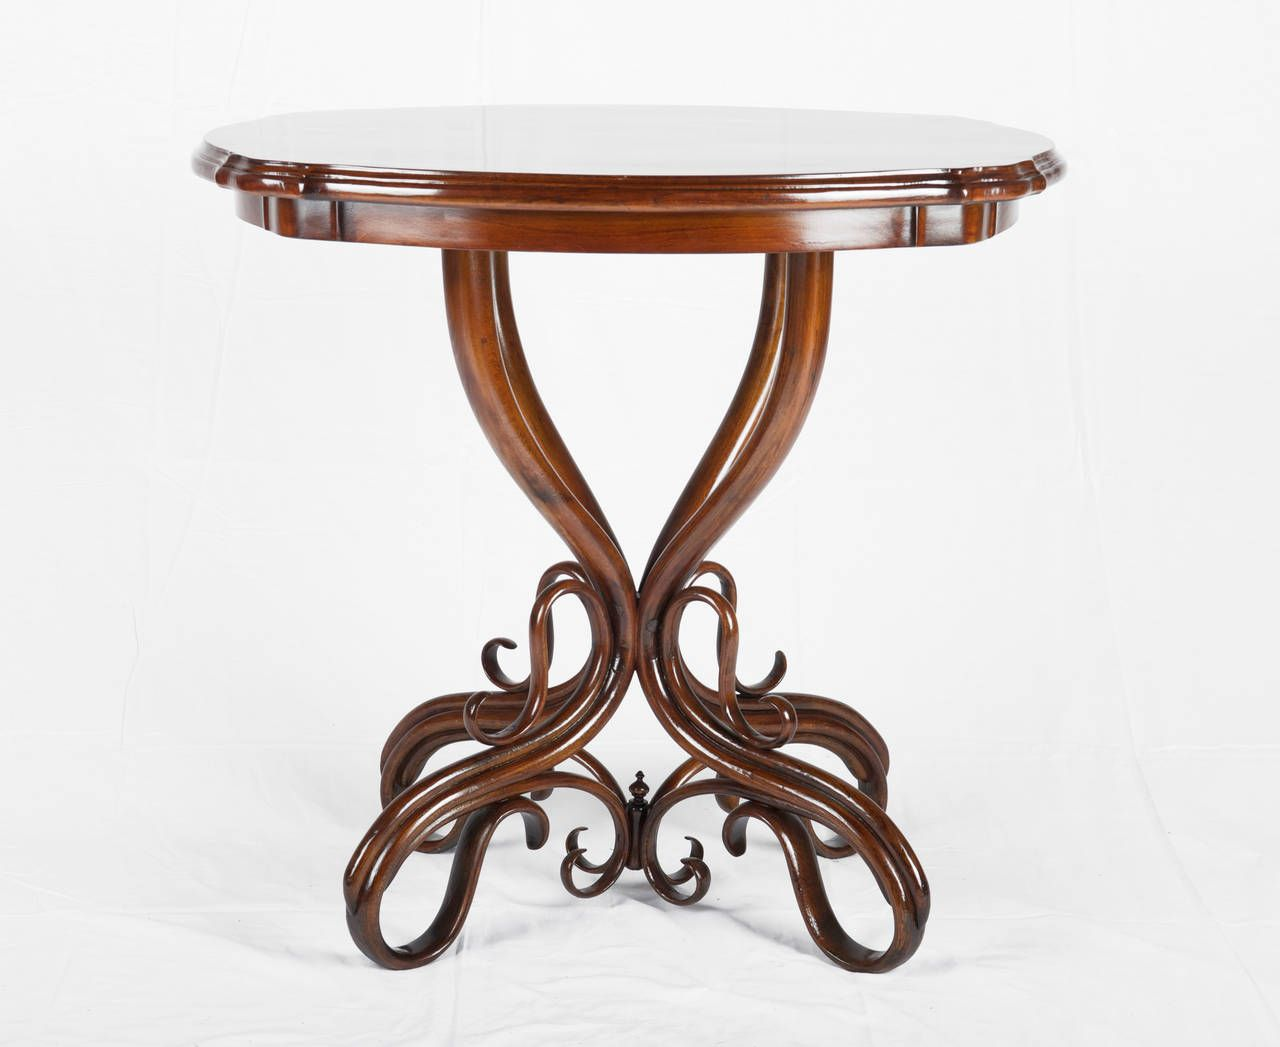 Bentwood table from thonet 1905 for sale at pamono for Table thonet